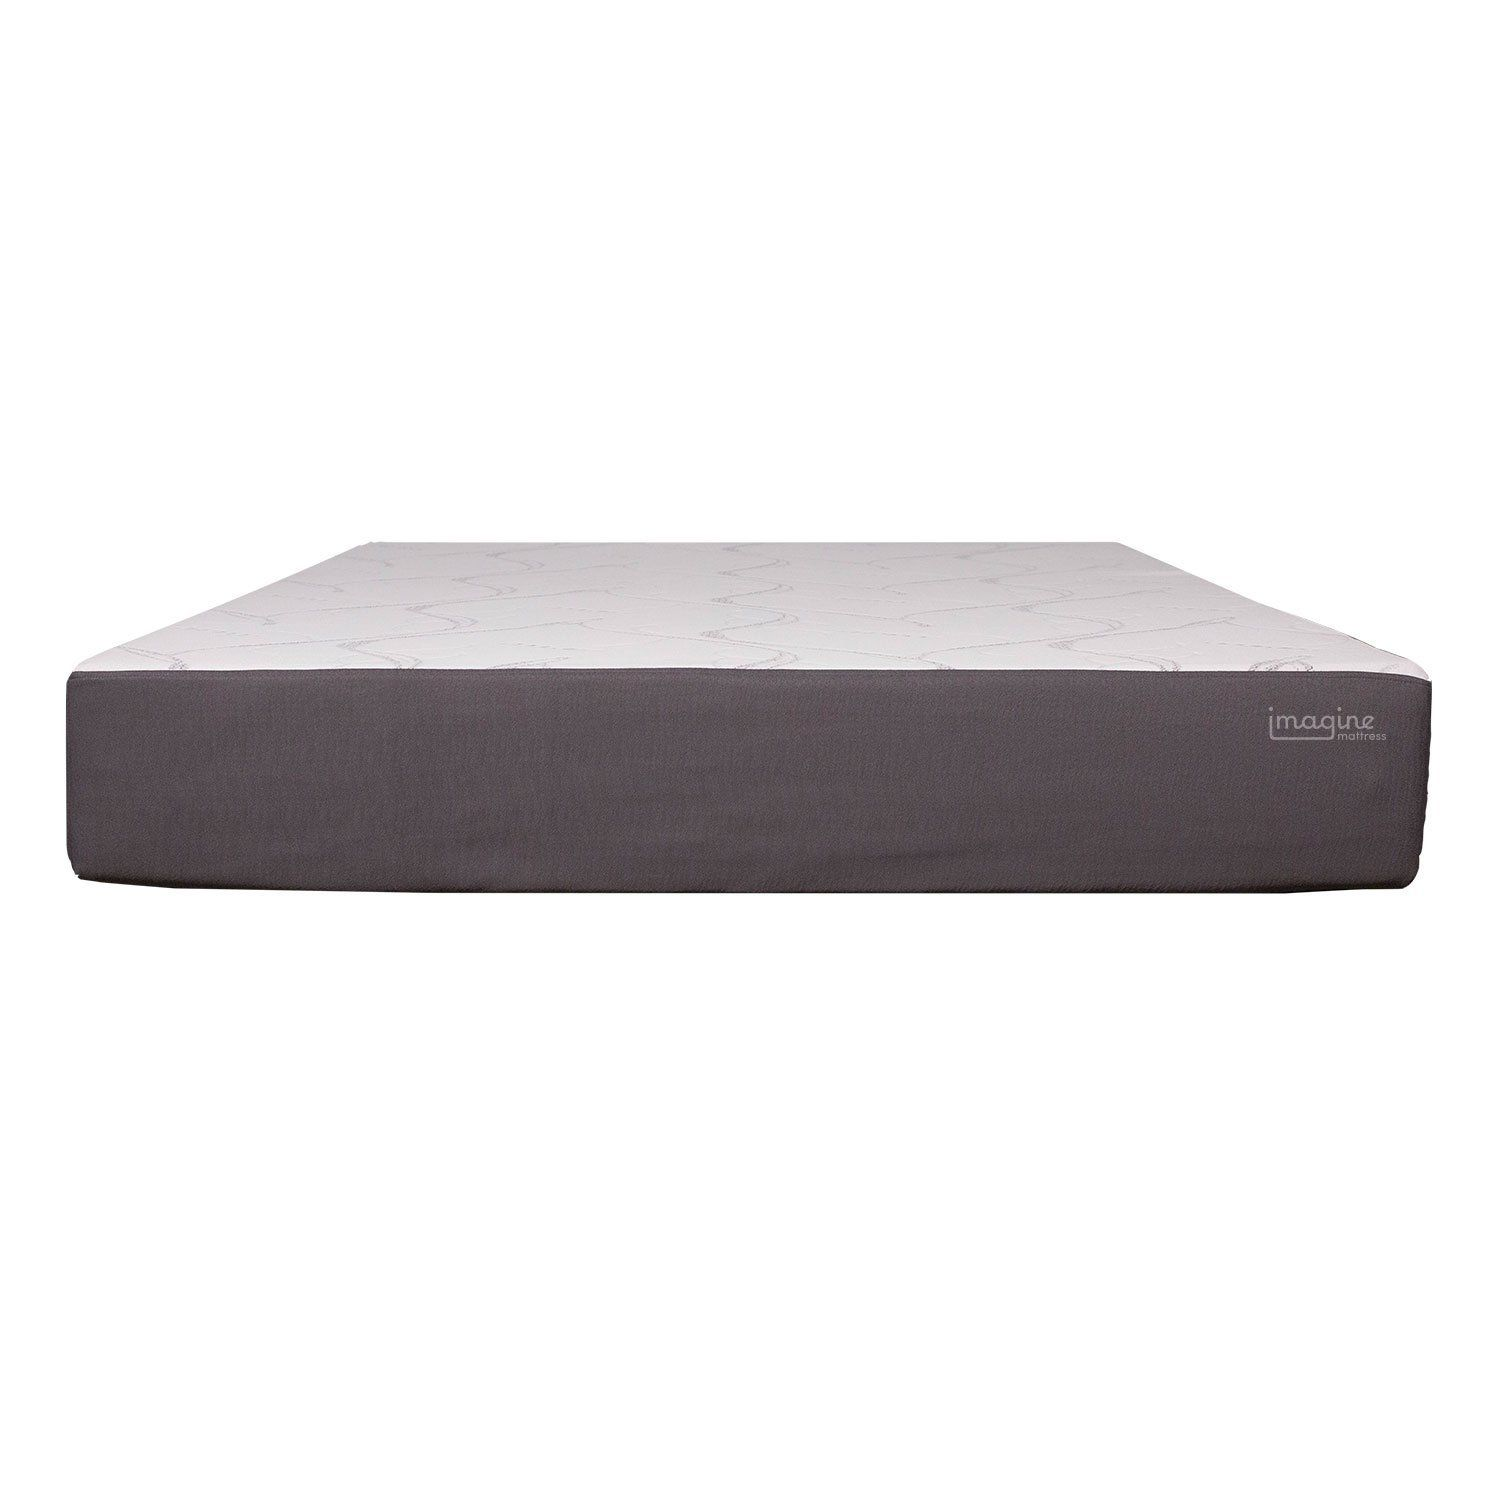 Cooling Gel Memory Foam Mattress 10 Inch Queen Size Medium Firm